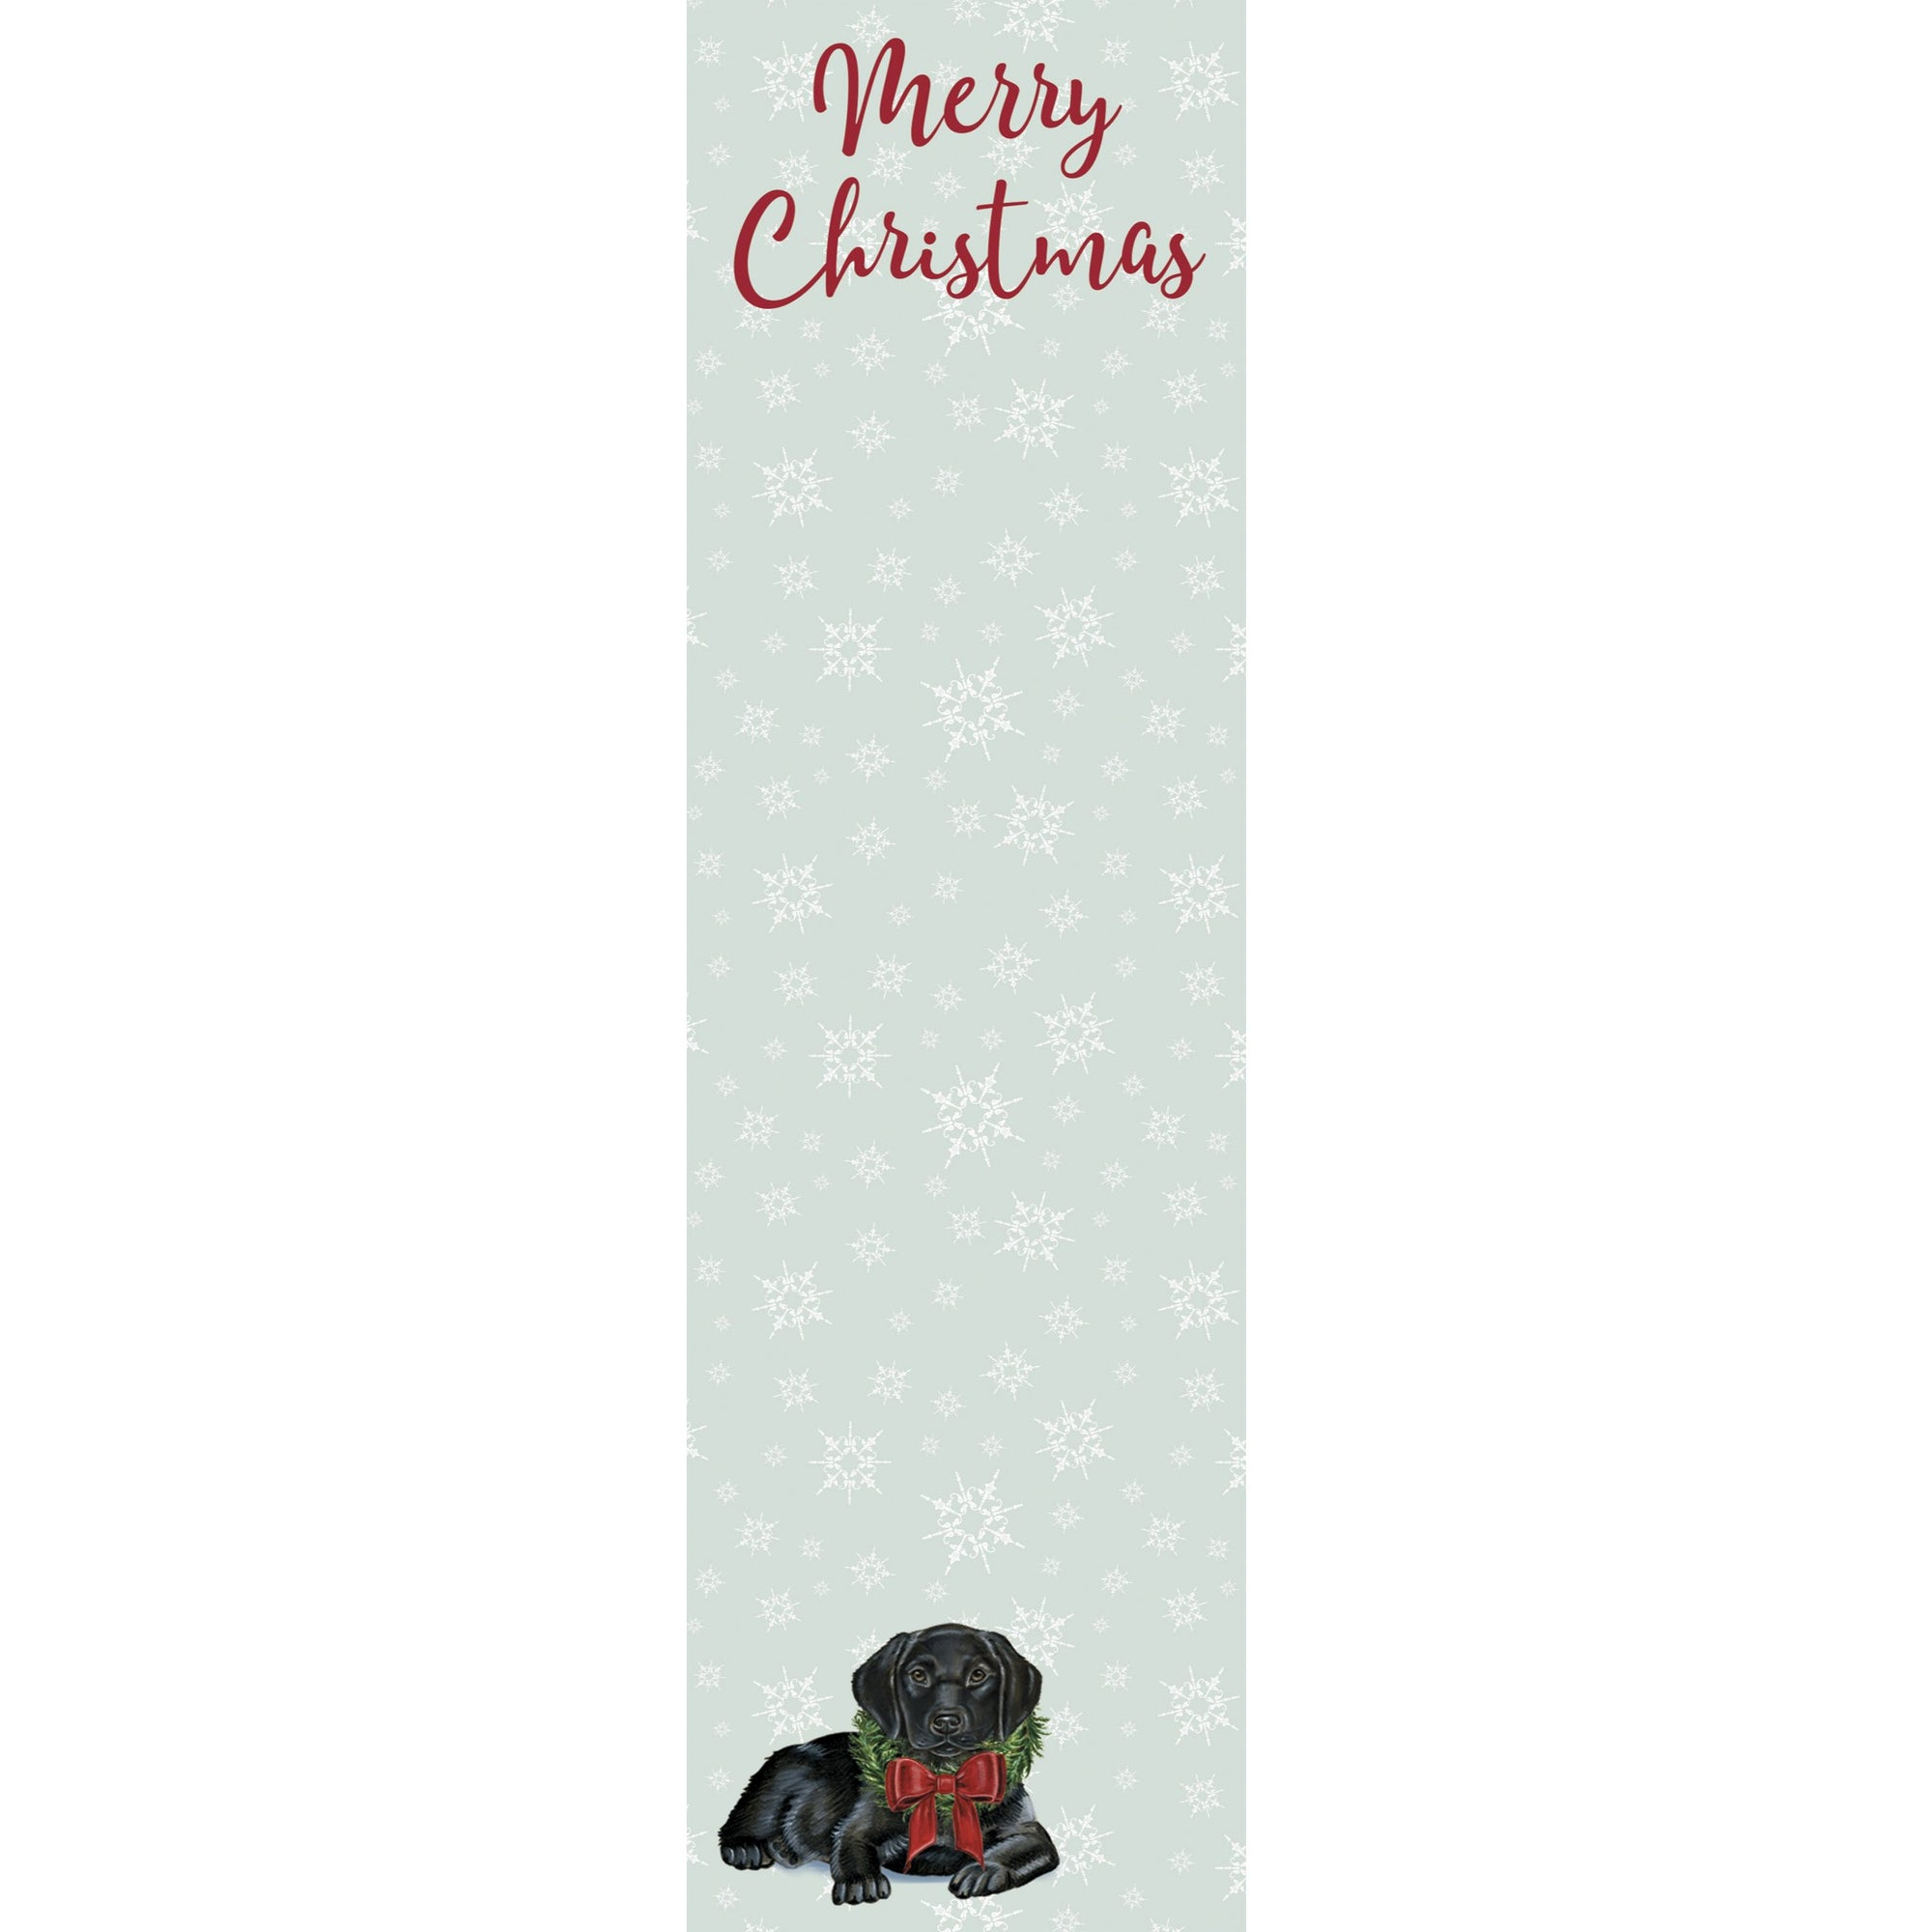 Primitives by Kathy - Holiday List Notepad, Black Lab